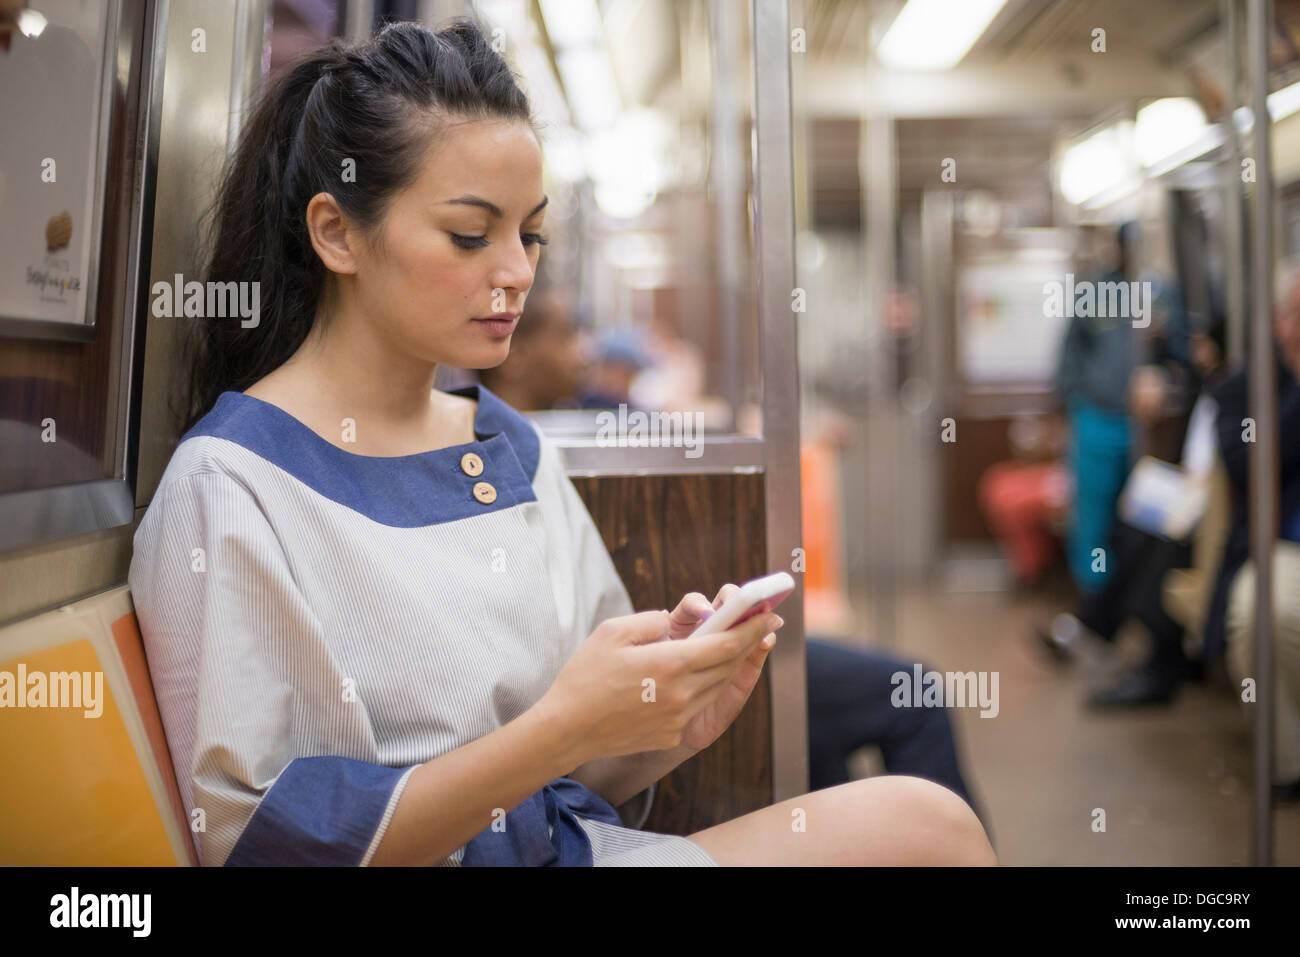 Mid adult women using mobile phone on subway, New York - Stock Image